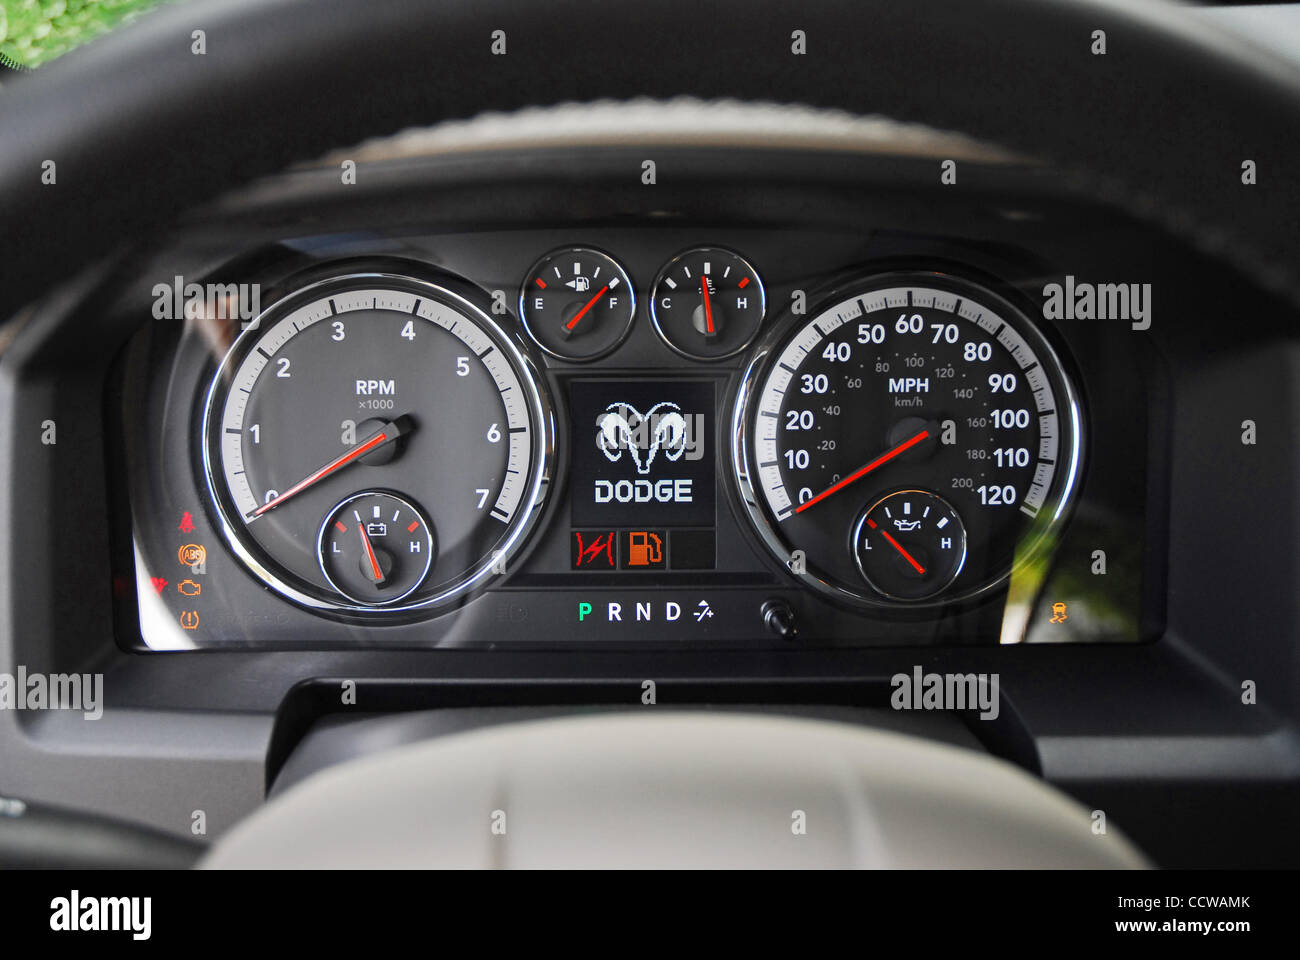 hight resolution of the 2010 dodge ram hemi bighorn crew cab is offered exclusively with a 390hp hemi v8 engine vehicle in austin tan pearl pictured instrument cluster